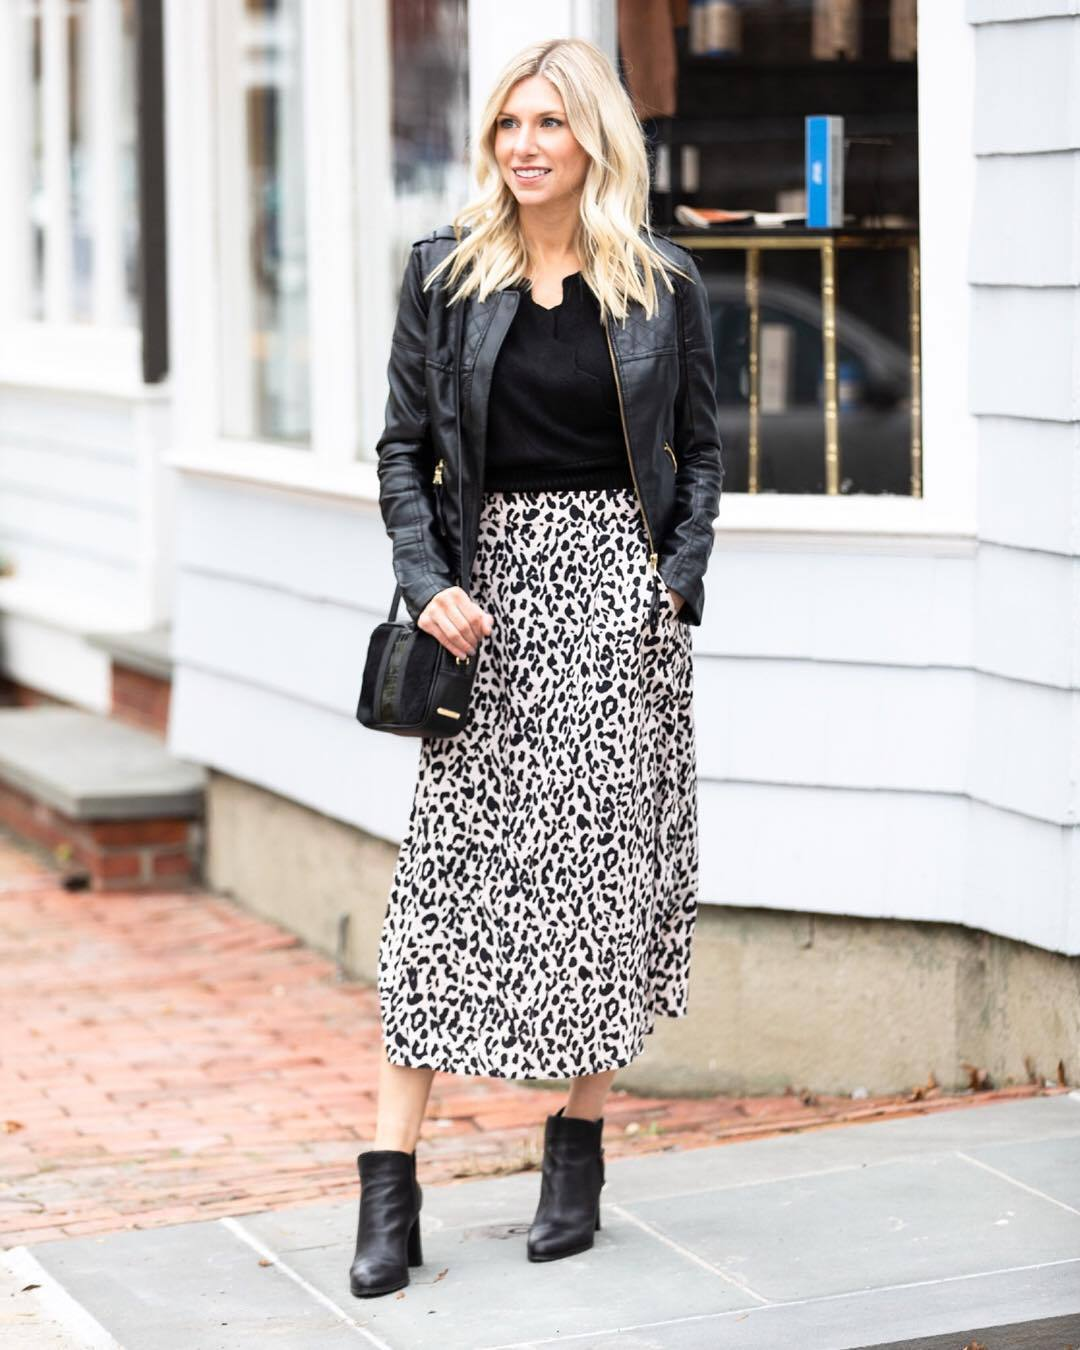 shoes ankle boots heel boots leopard print midi skirt black and white leather jacket black top black bag